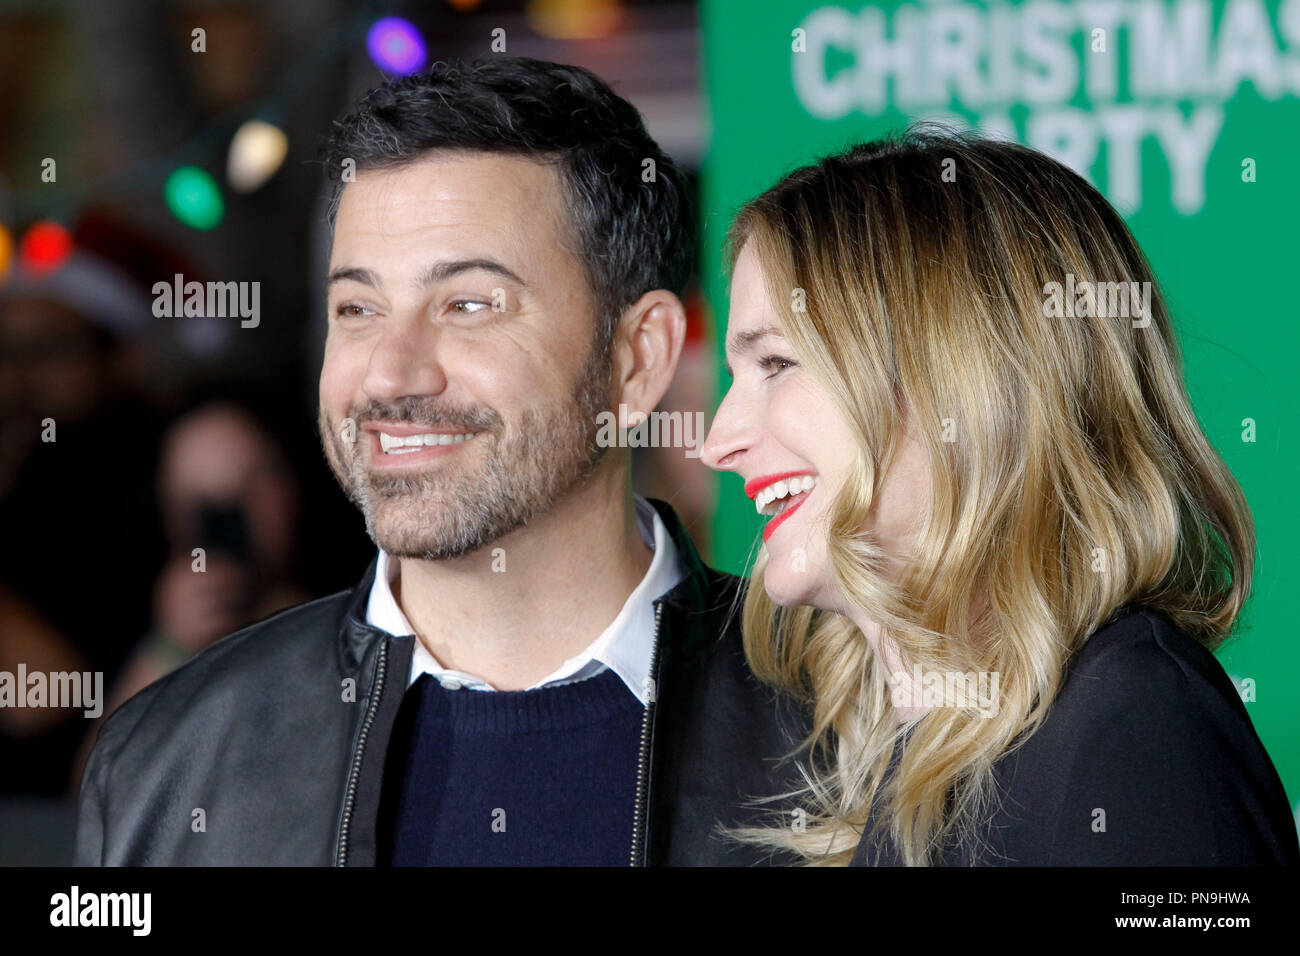 Molly Mcnearney And Jimmy Kimmel Stock Photos & Molly Mcnearney And ...